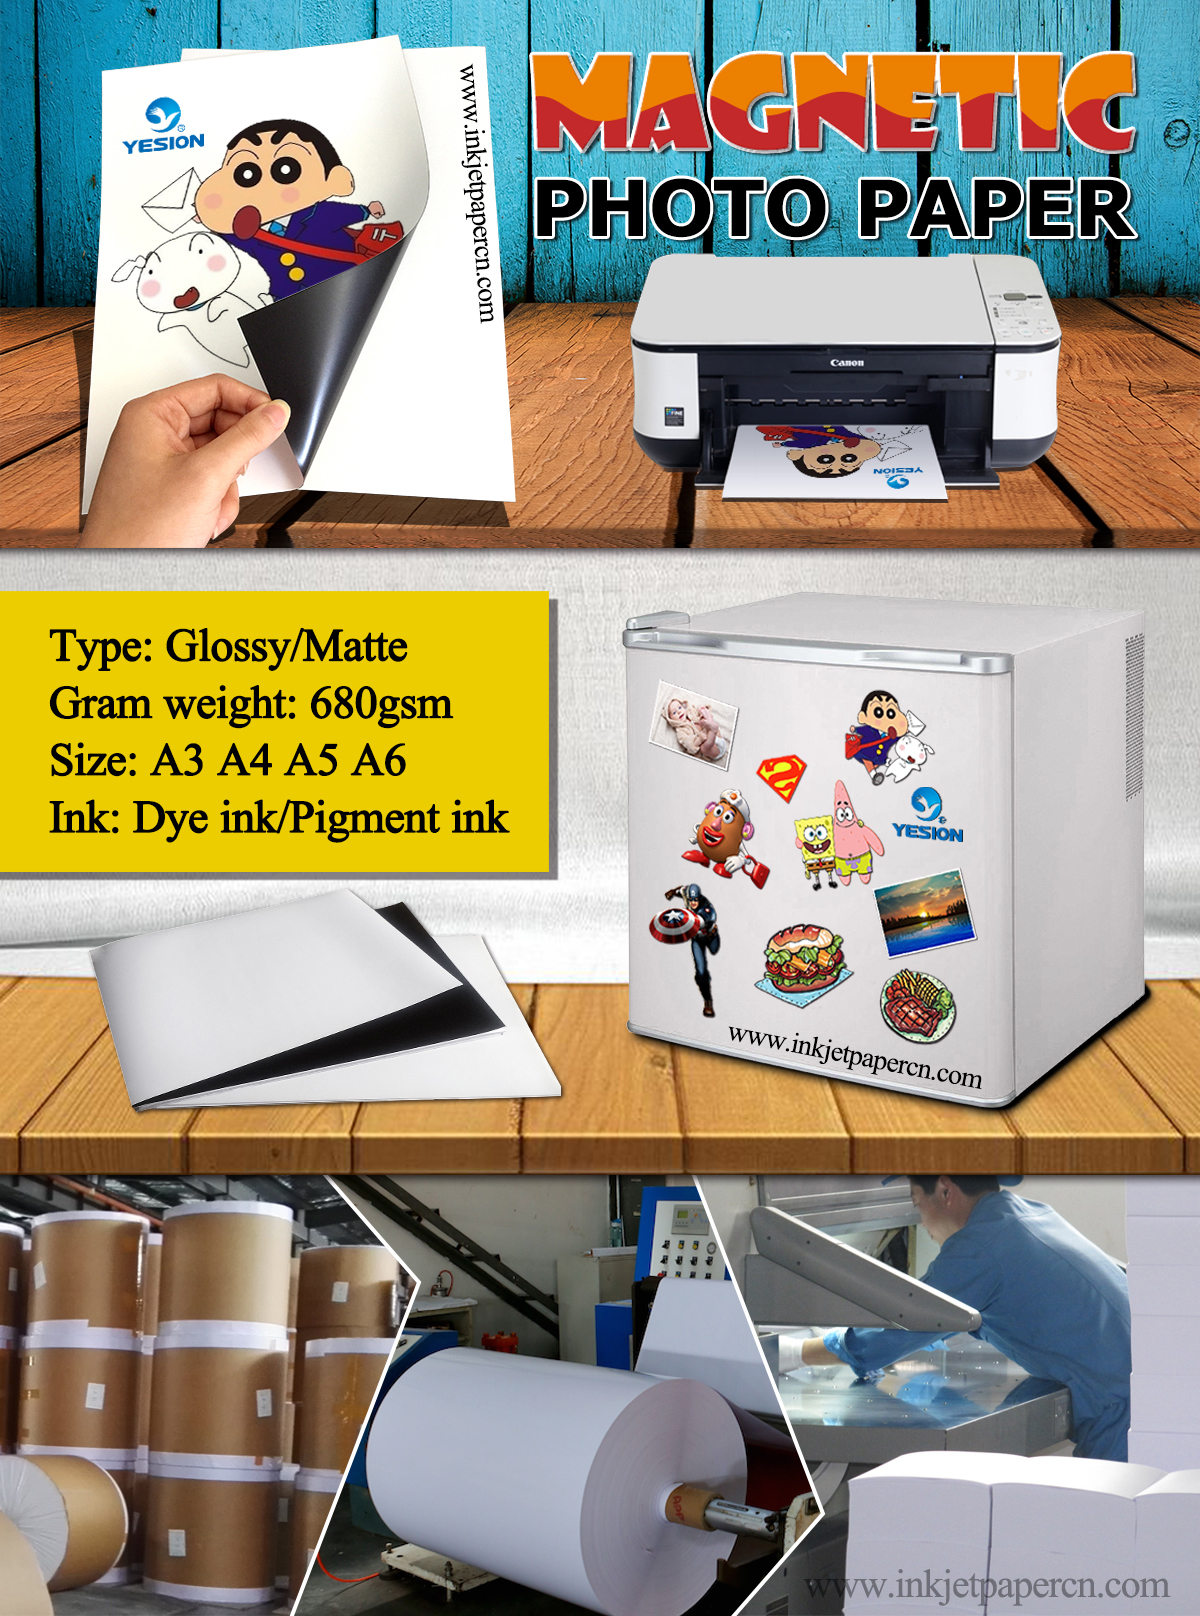 image relating to Printable Magnetic Sheets identified as Very hot Sale!printable Magnetic Sheets/inkjet Magnetic Image Paper - Purchase Printable Magnetic Sheets,Printable Magnetic Sheets,Inkjet Magnetic Image Paper